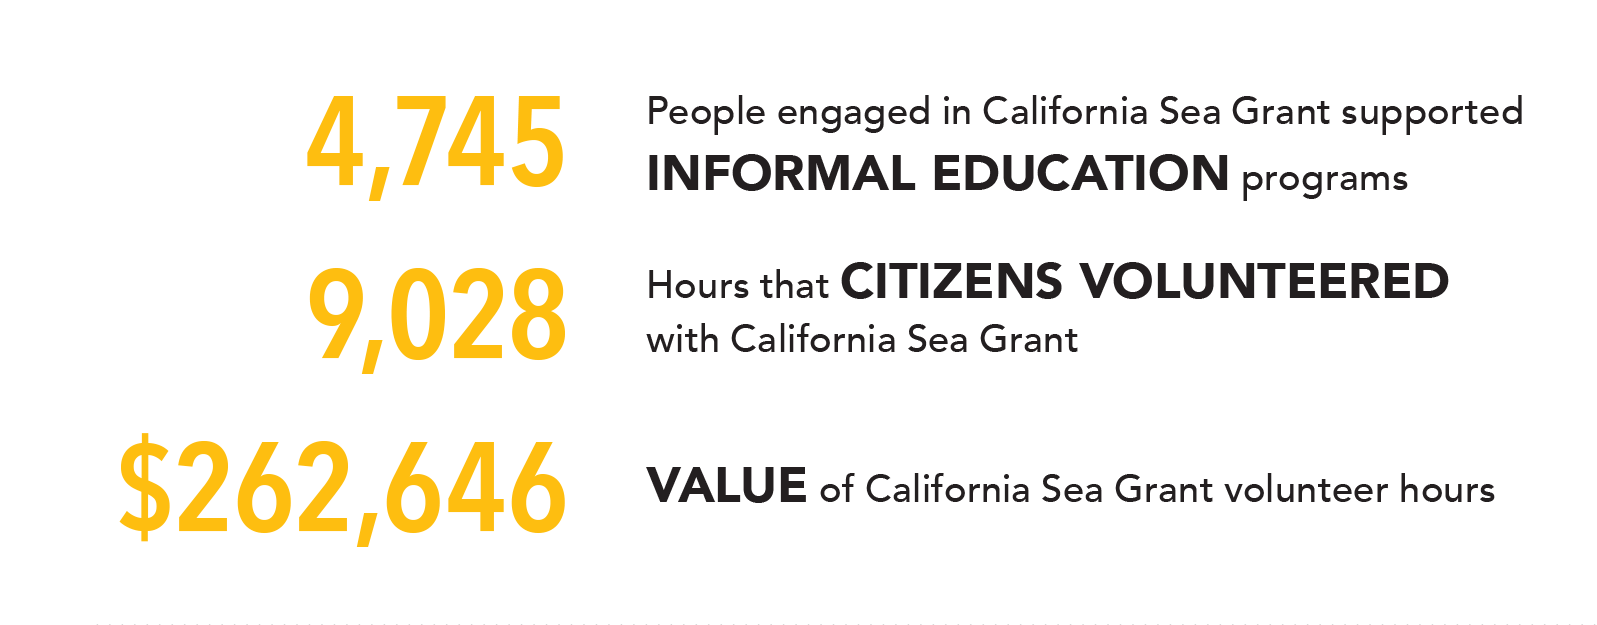 Infographic: • 4,745 people engaged in California Sea Grant supported informal education programs • 9,028 hours that citizens volunteered with California Sea Grant • $262,646 – Value of California Sea Grant volunteer hours